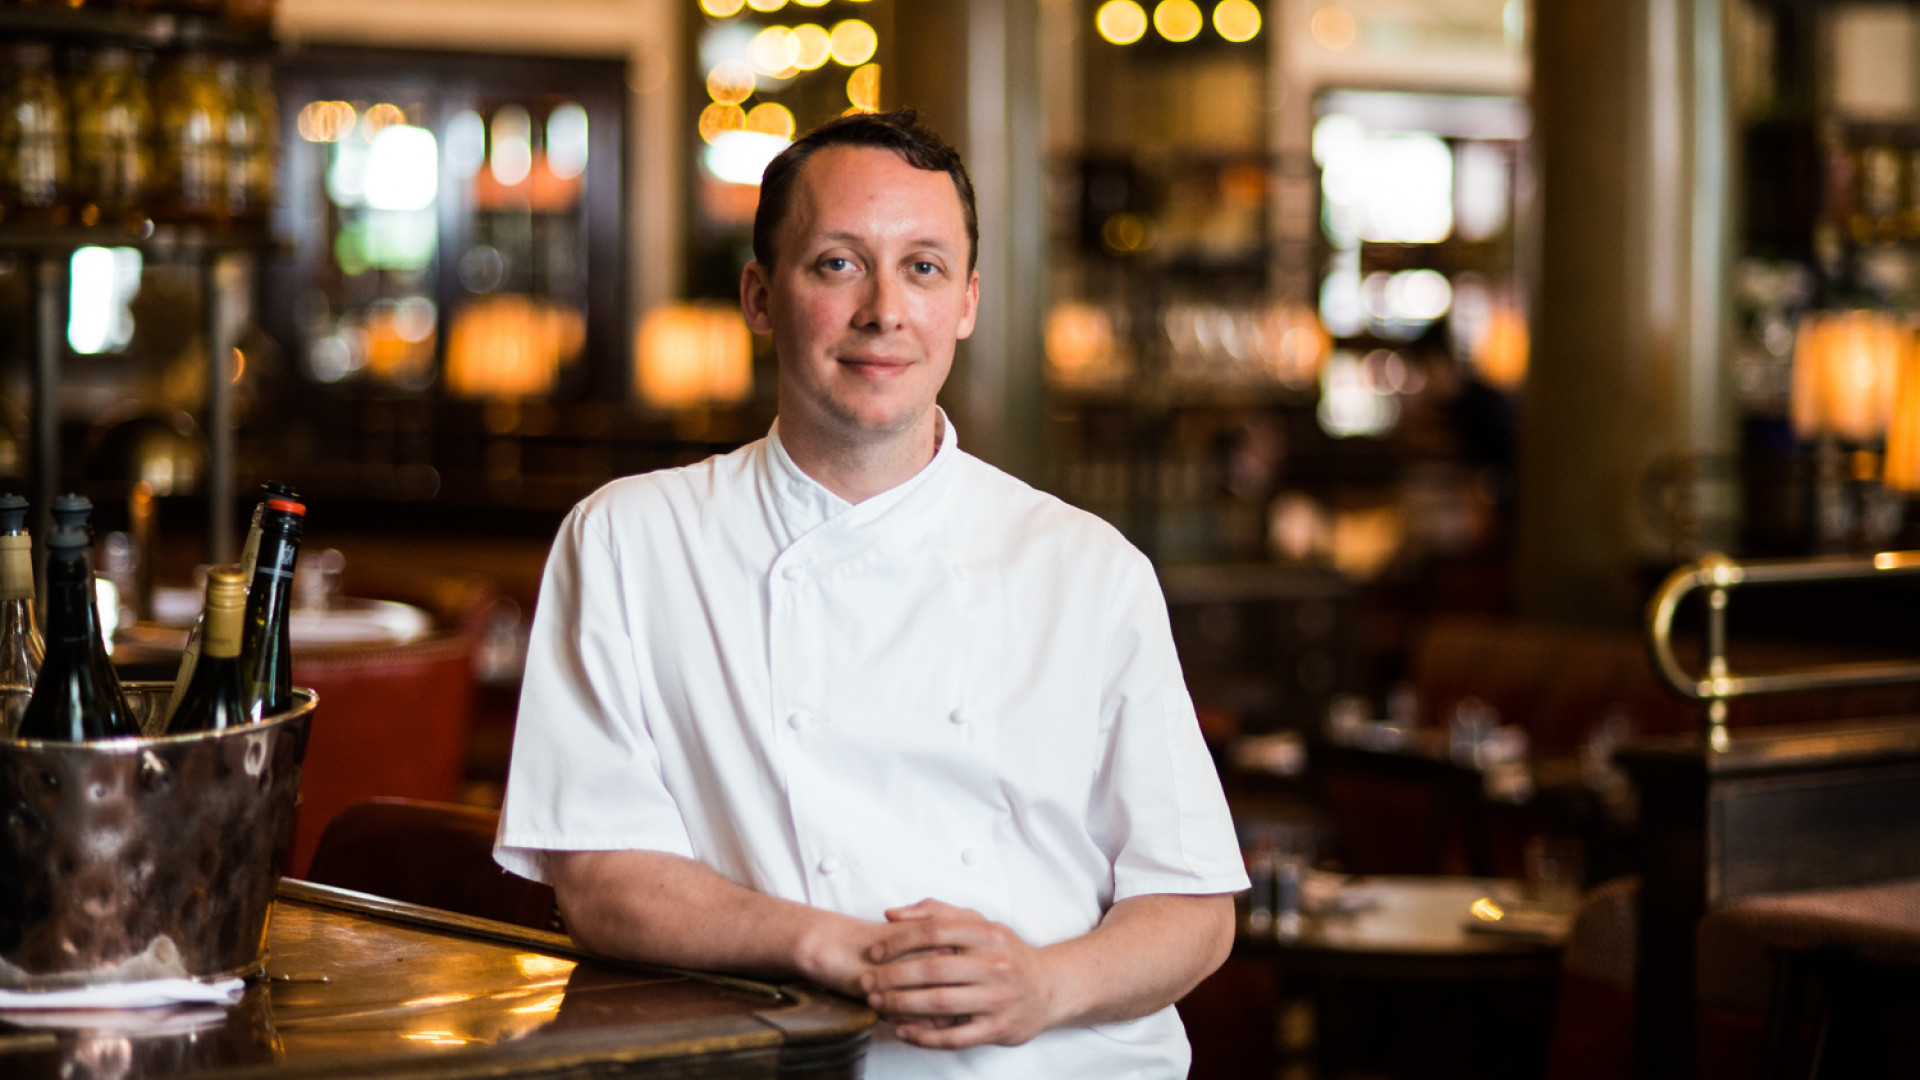 Holborn Dining Room's executive chef Calum Franklin